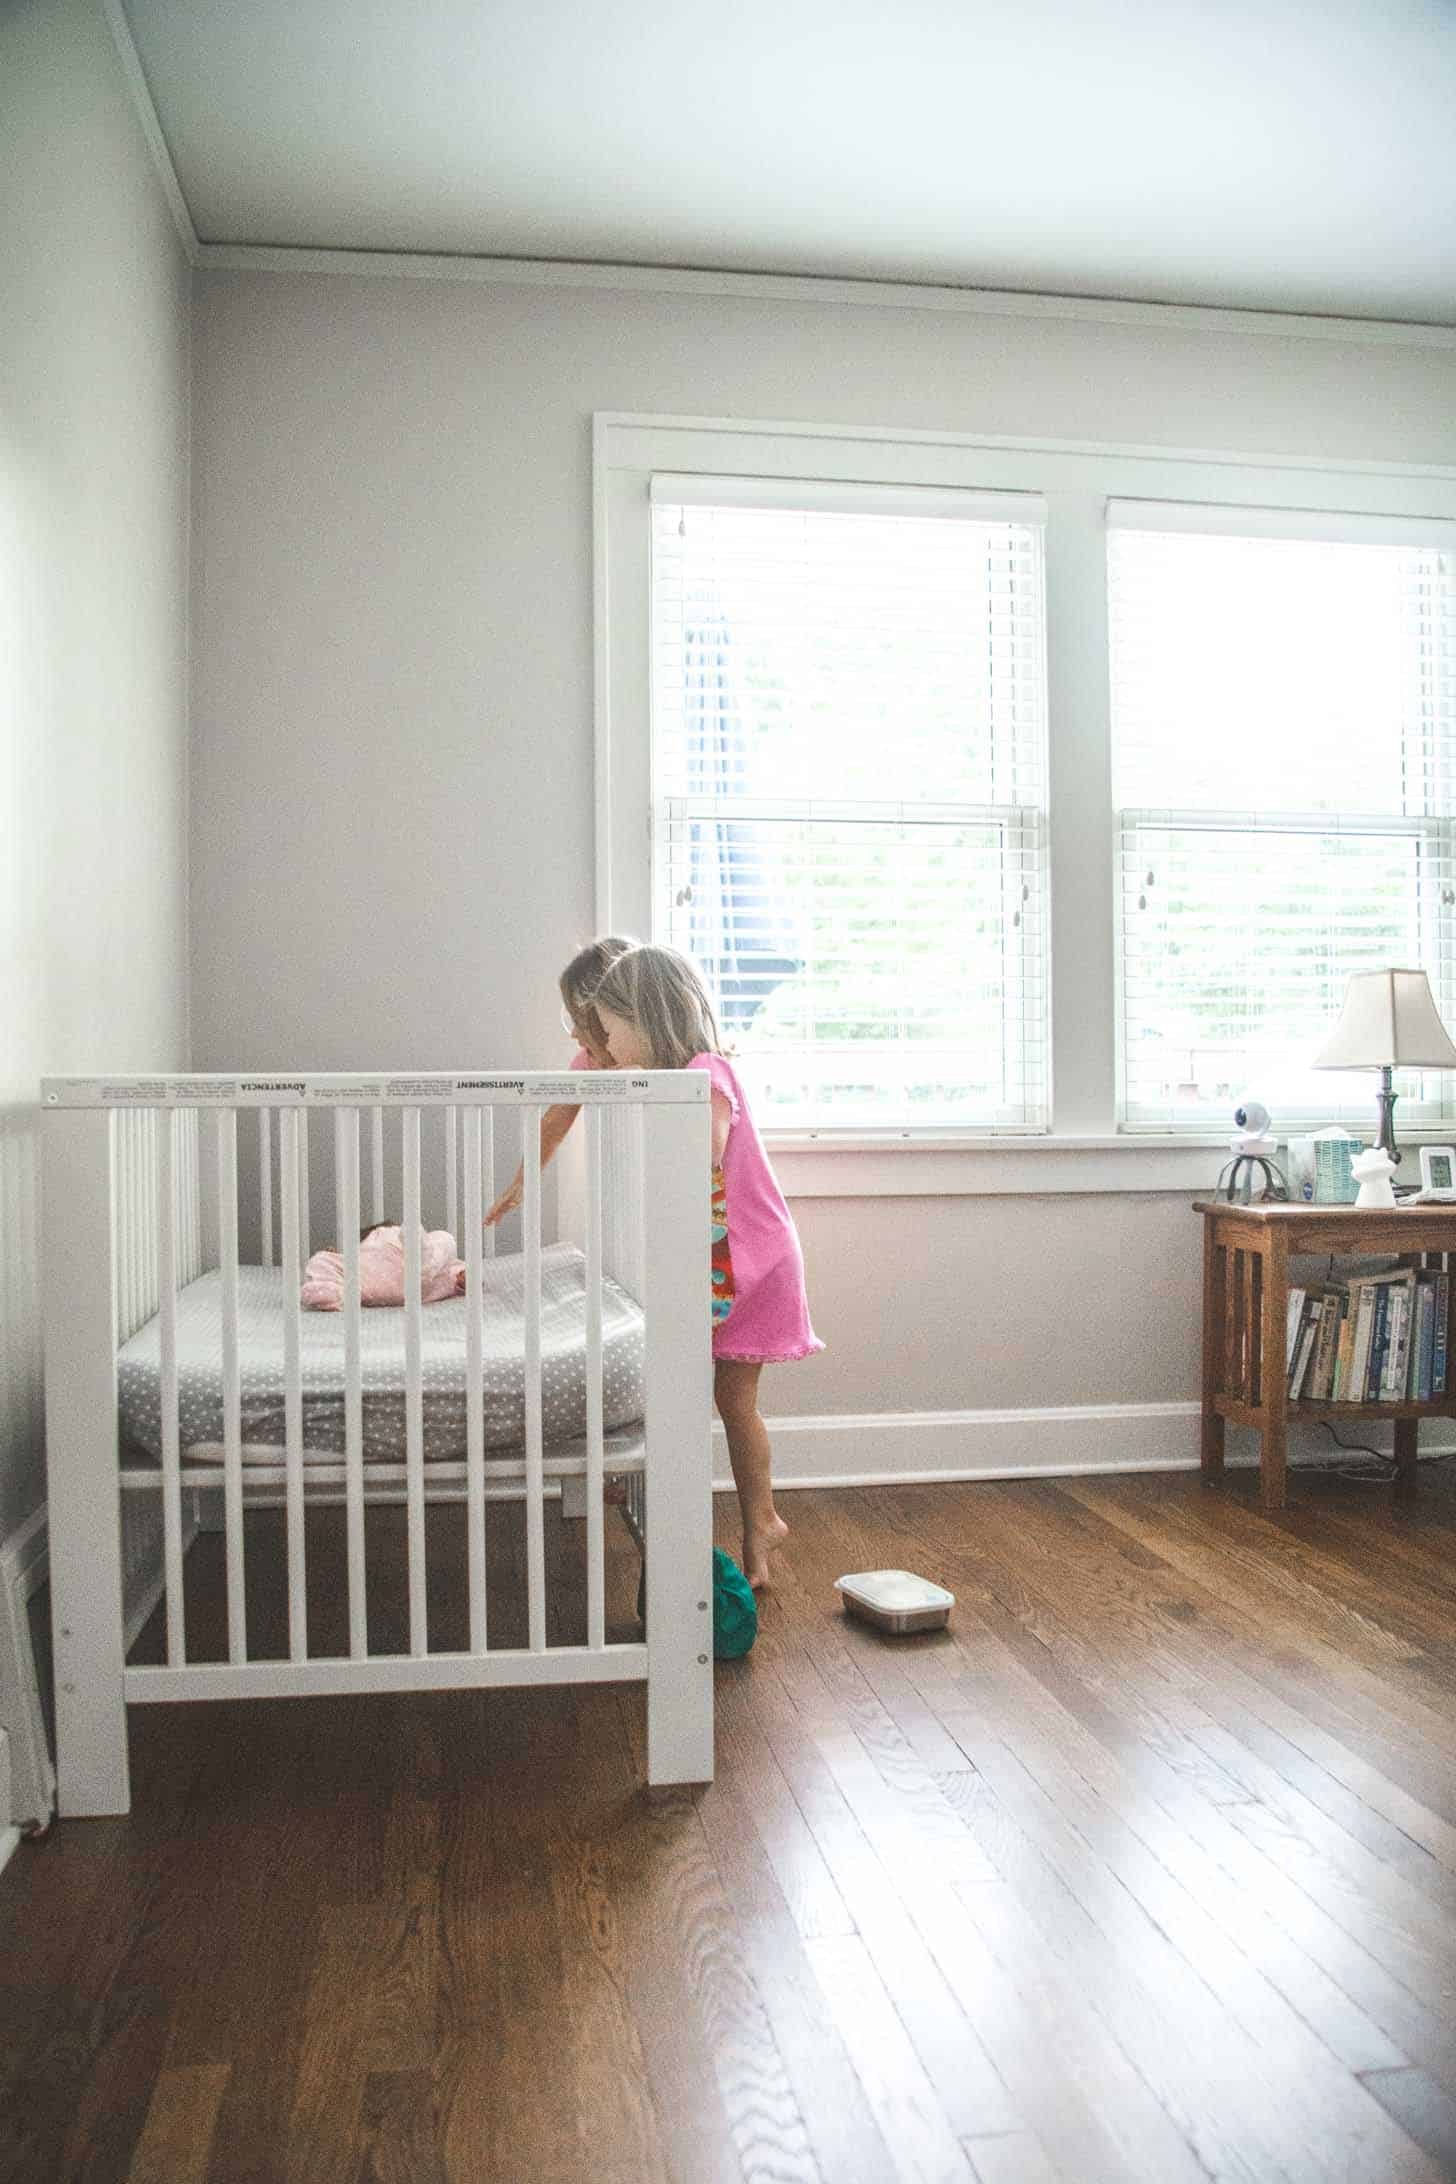 two little girls looking at a baby in a crib